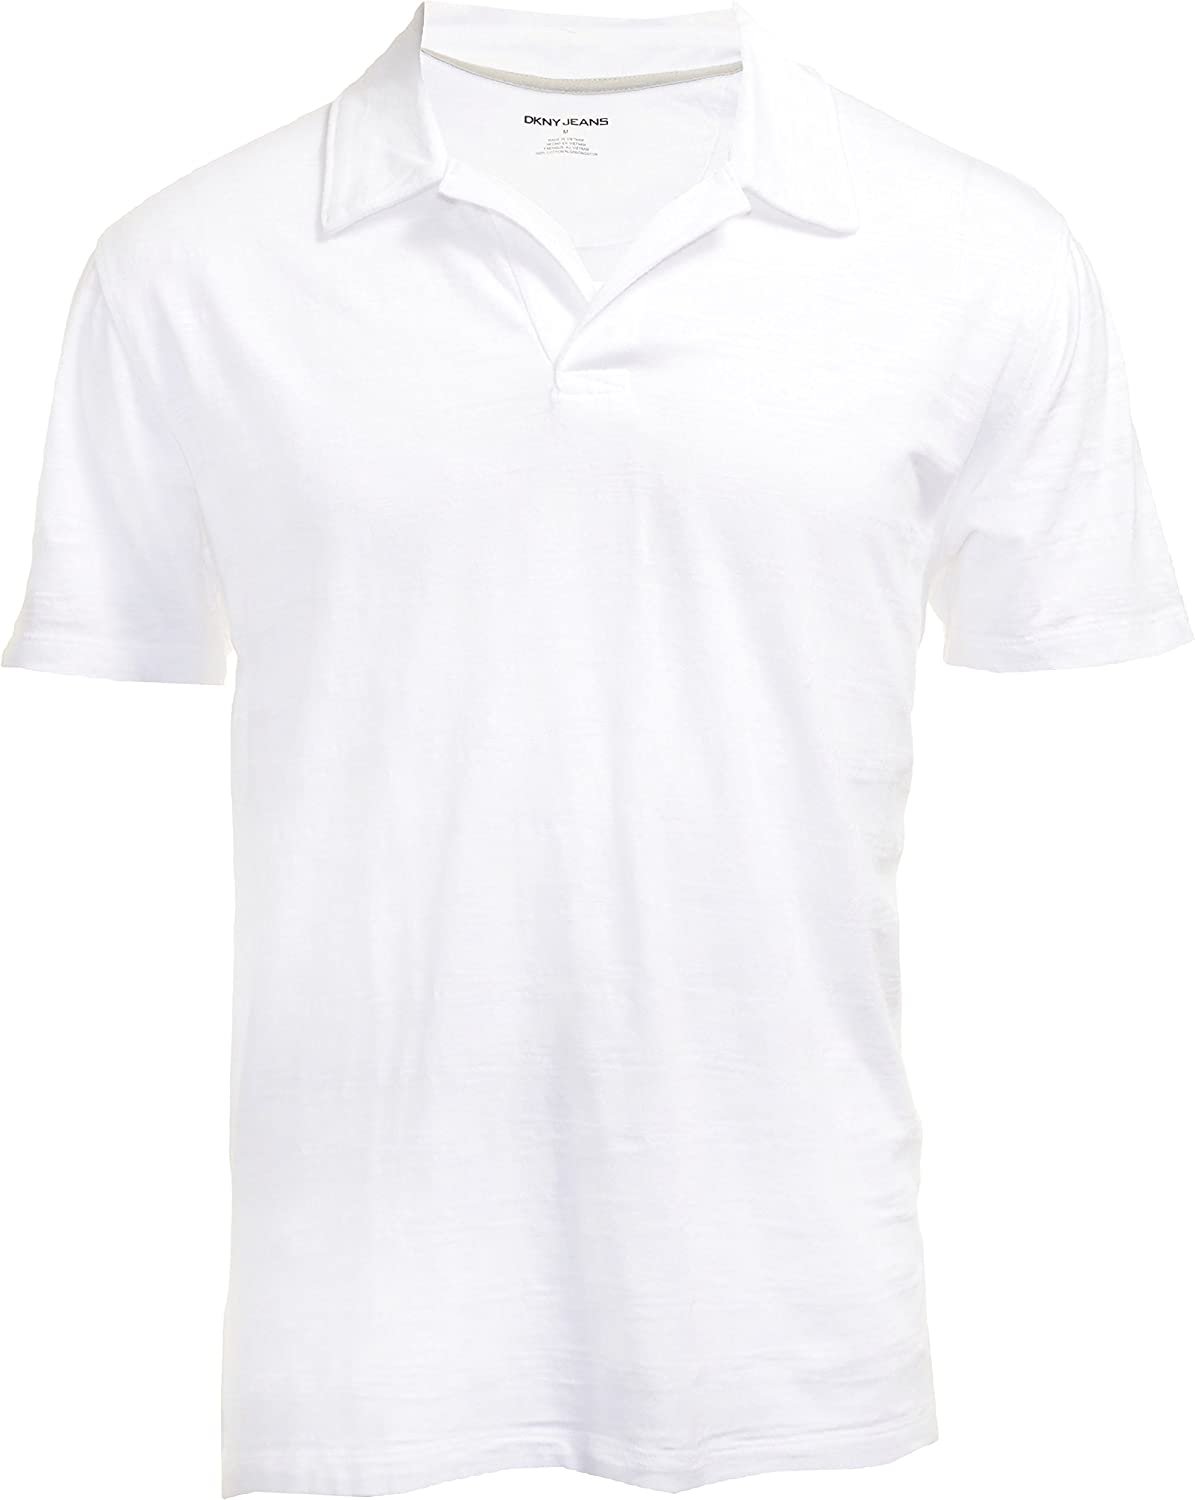 DKNY Jeans Mens Gifts Short Polo Shirt Sleeve Recommended